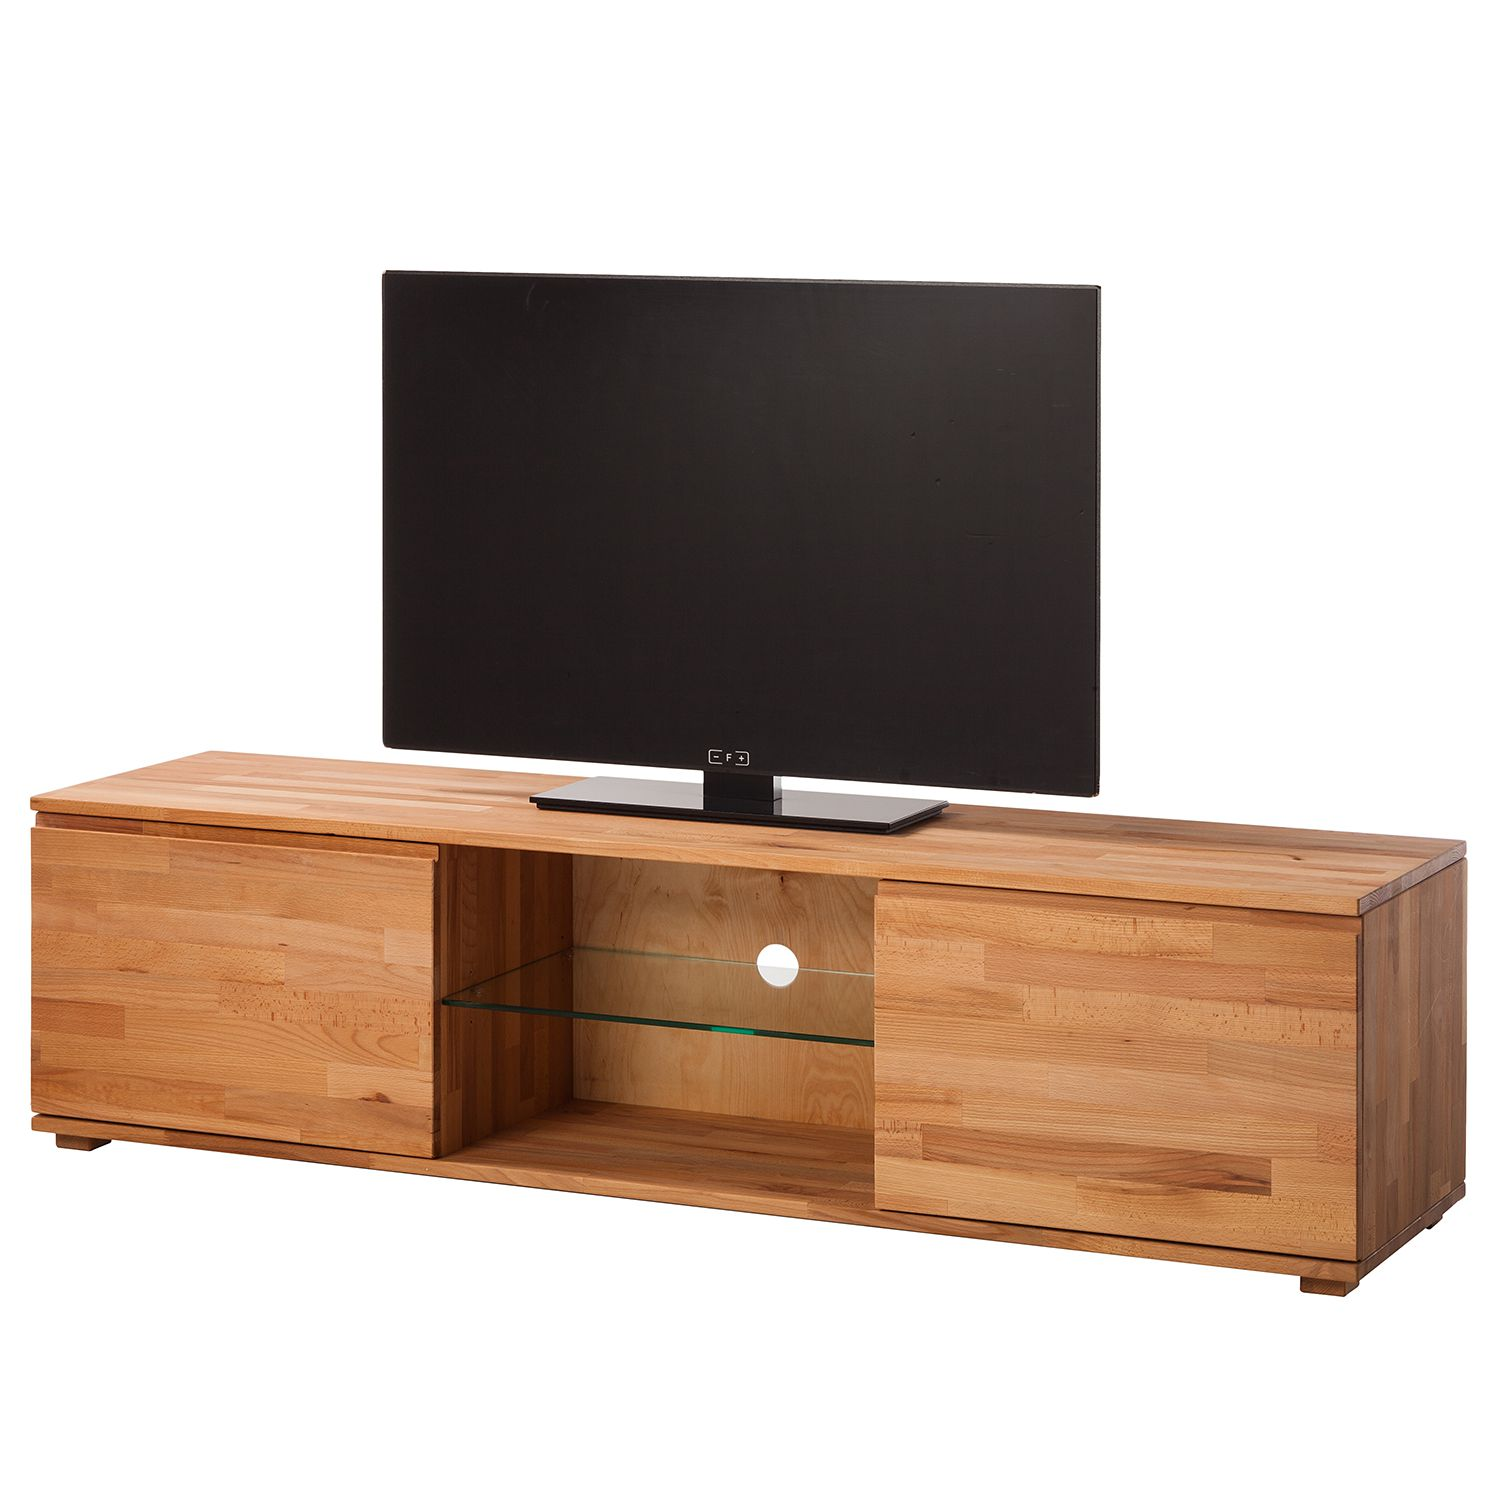 Tv Lowboard Kolonial Tv Lowboard Gnstig Best Perfect Lowboard With Tv Mbel Cm With Tv